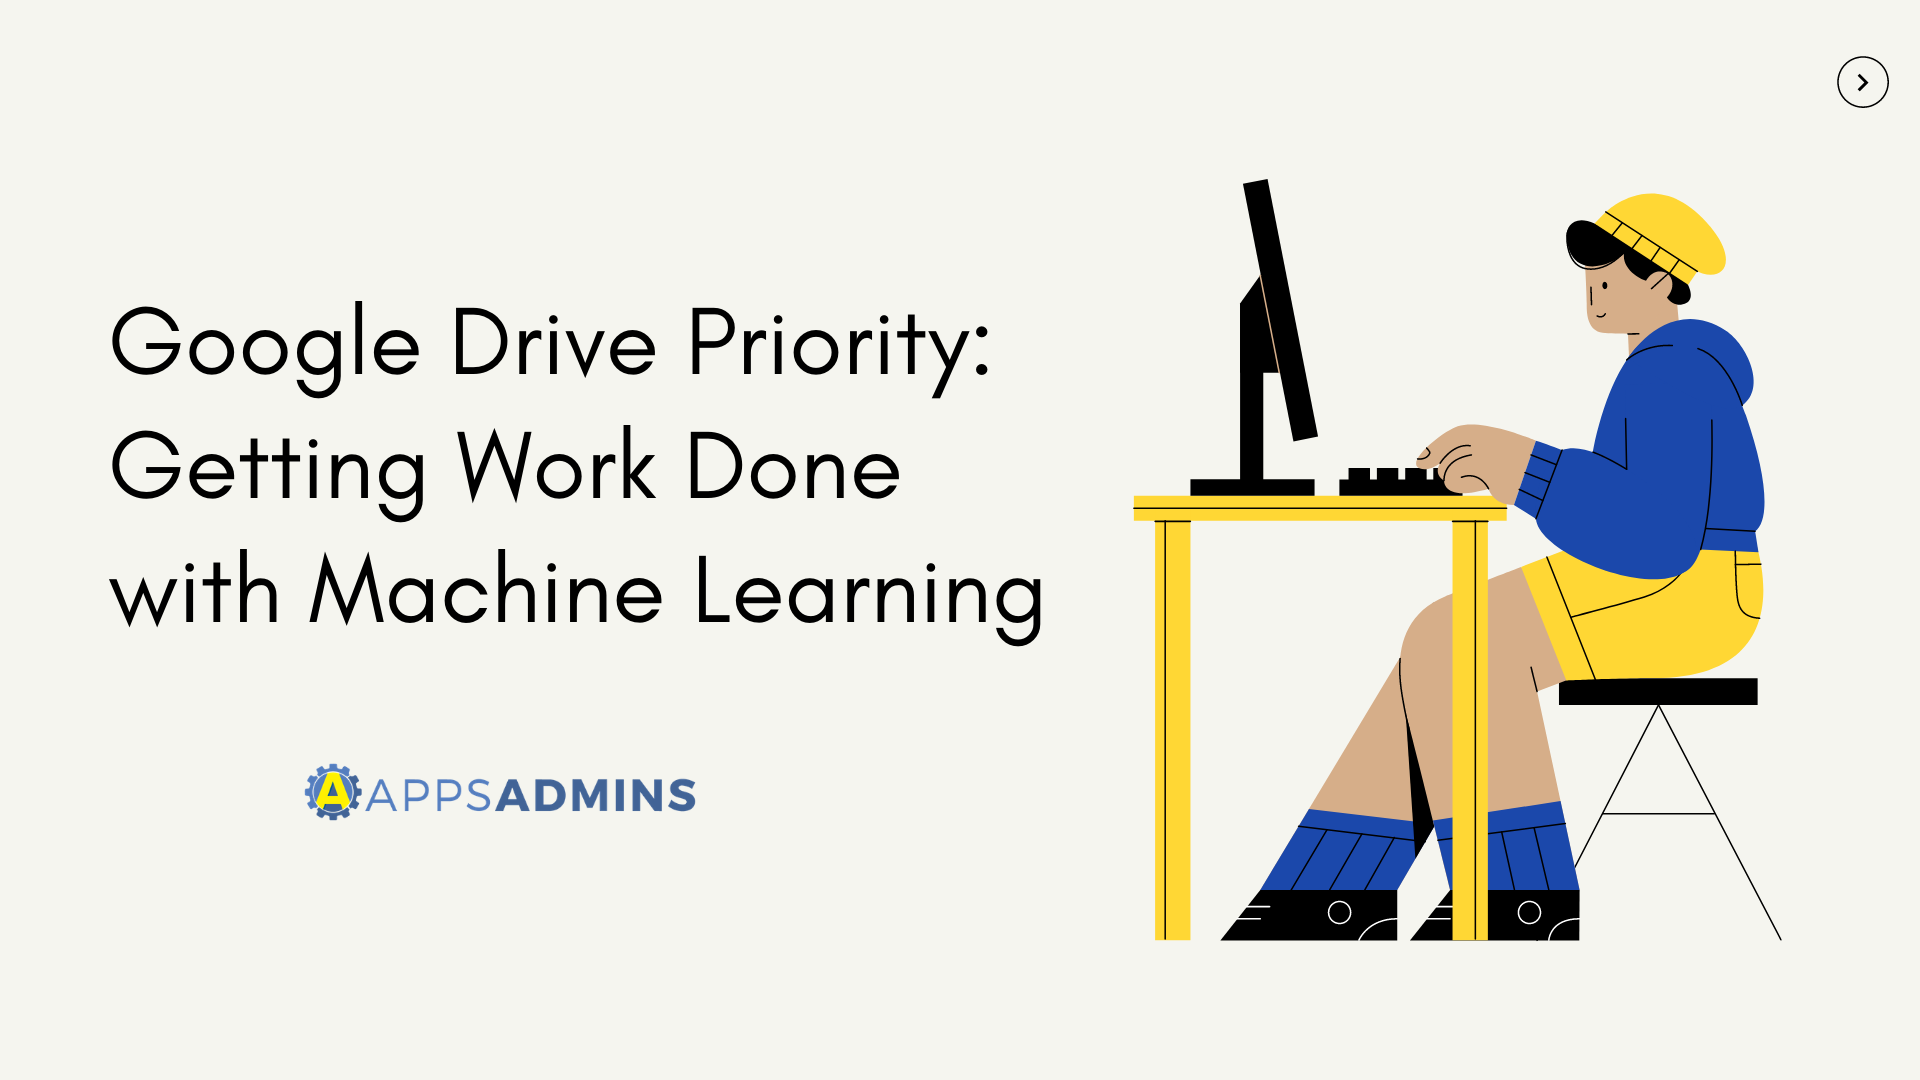 Google Drive Priority: Getting Work Done with Machine Learning